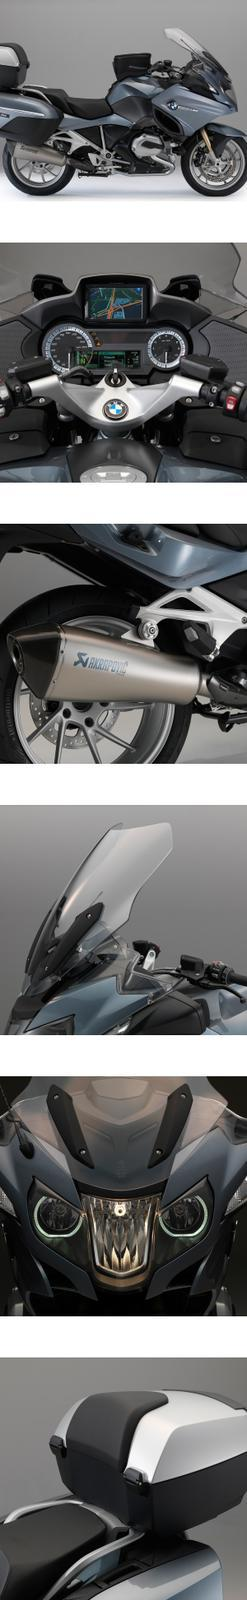 2014 BMW R1200RT Accessories